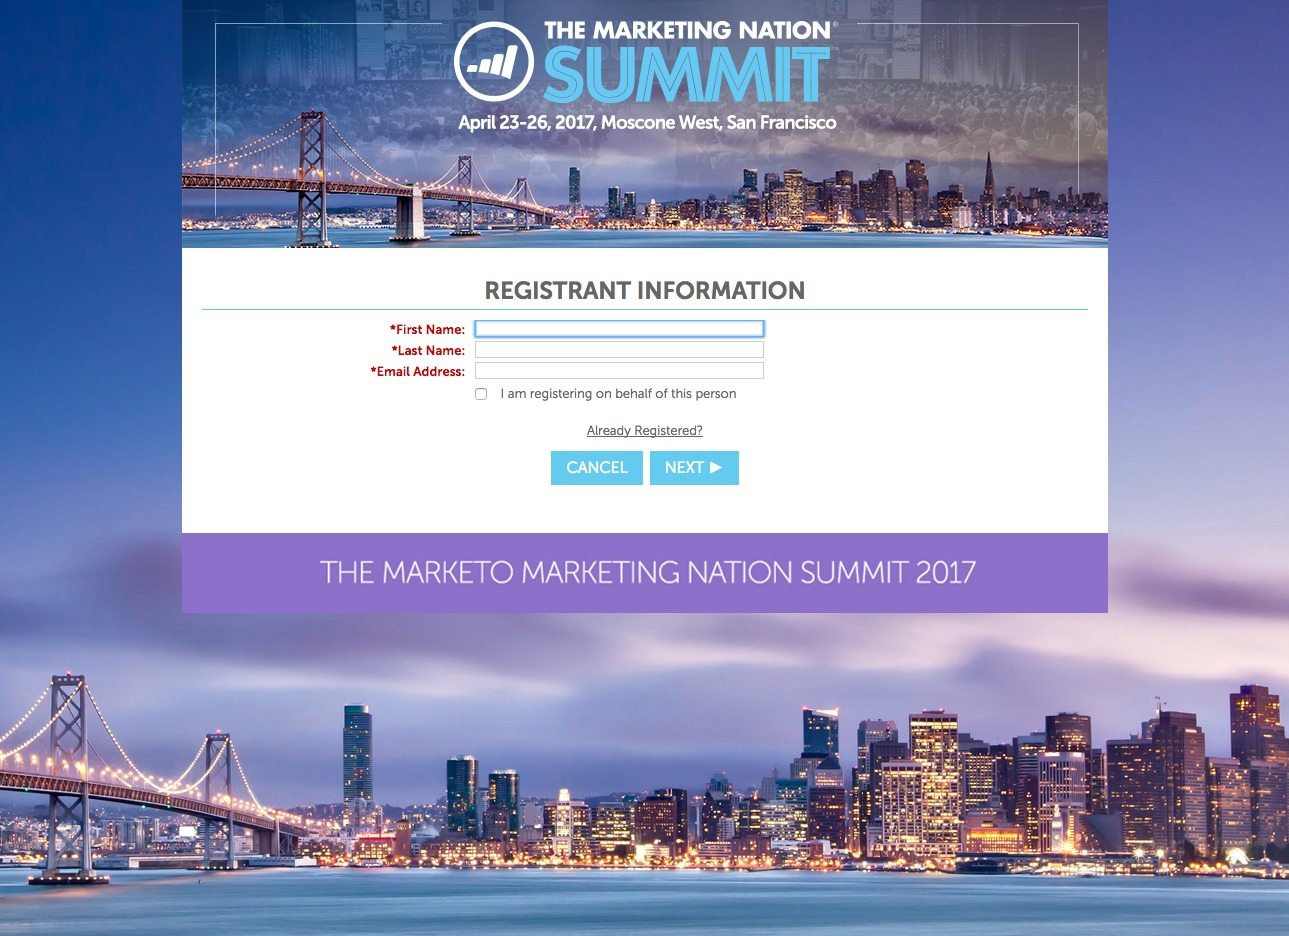 This picture shows how Marketo uses a landing page to generate business event registrations and increase sales leads.